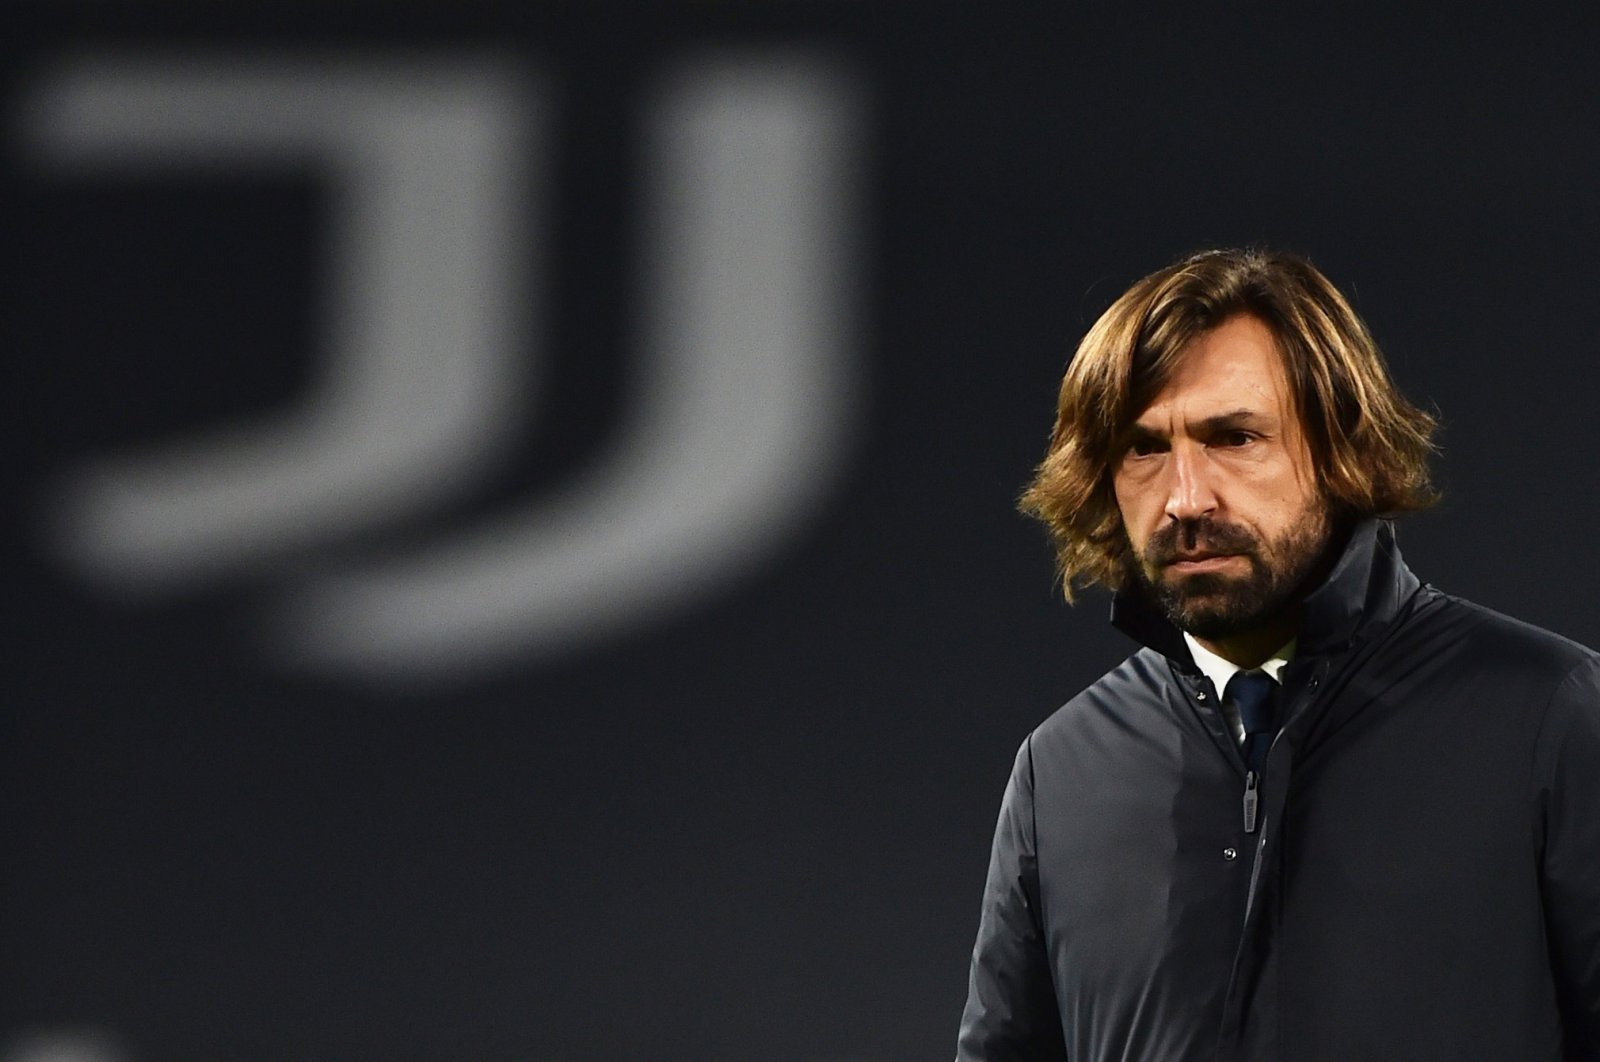 Juventus coach Andrea Pirlo before a Serie A match against Sassuolo at the Allianz Stadium, Turin, Italy, Jan. 10, 2021. (REUTERS Photo)